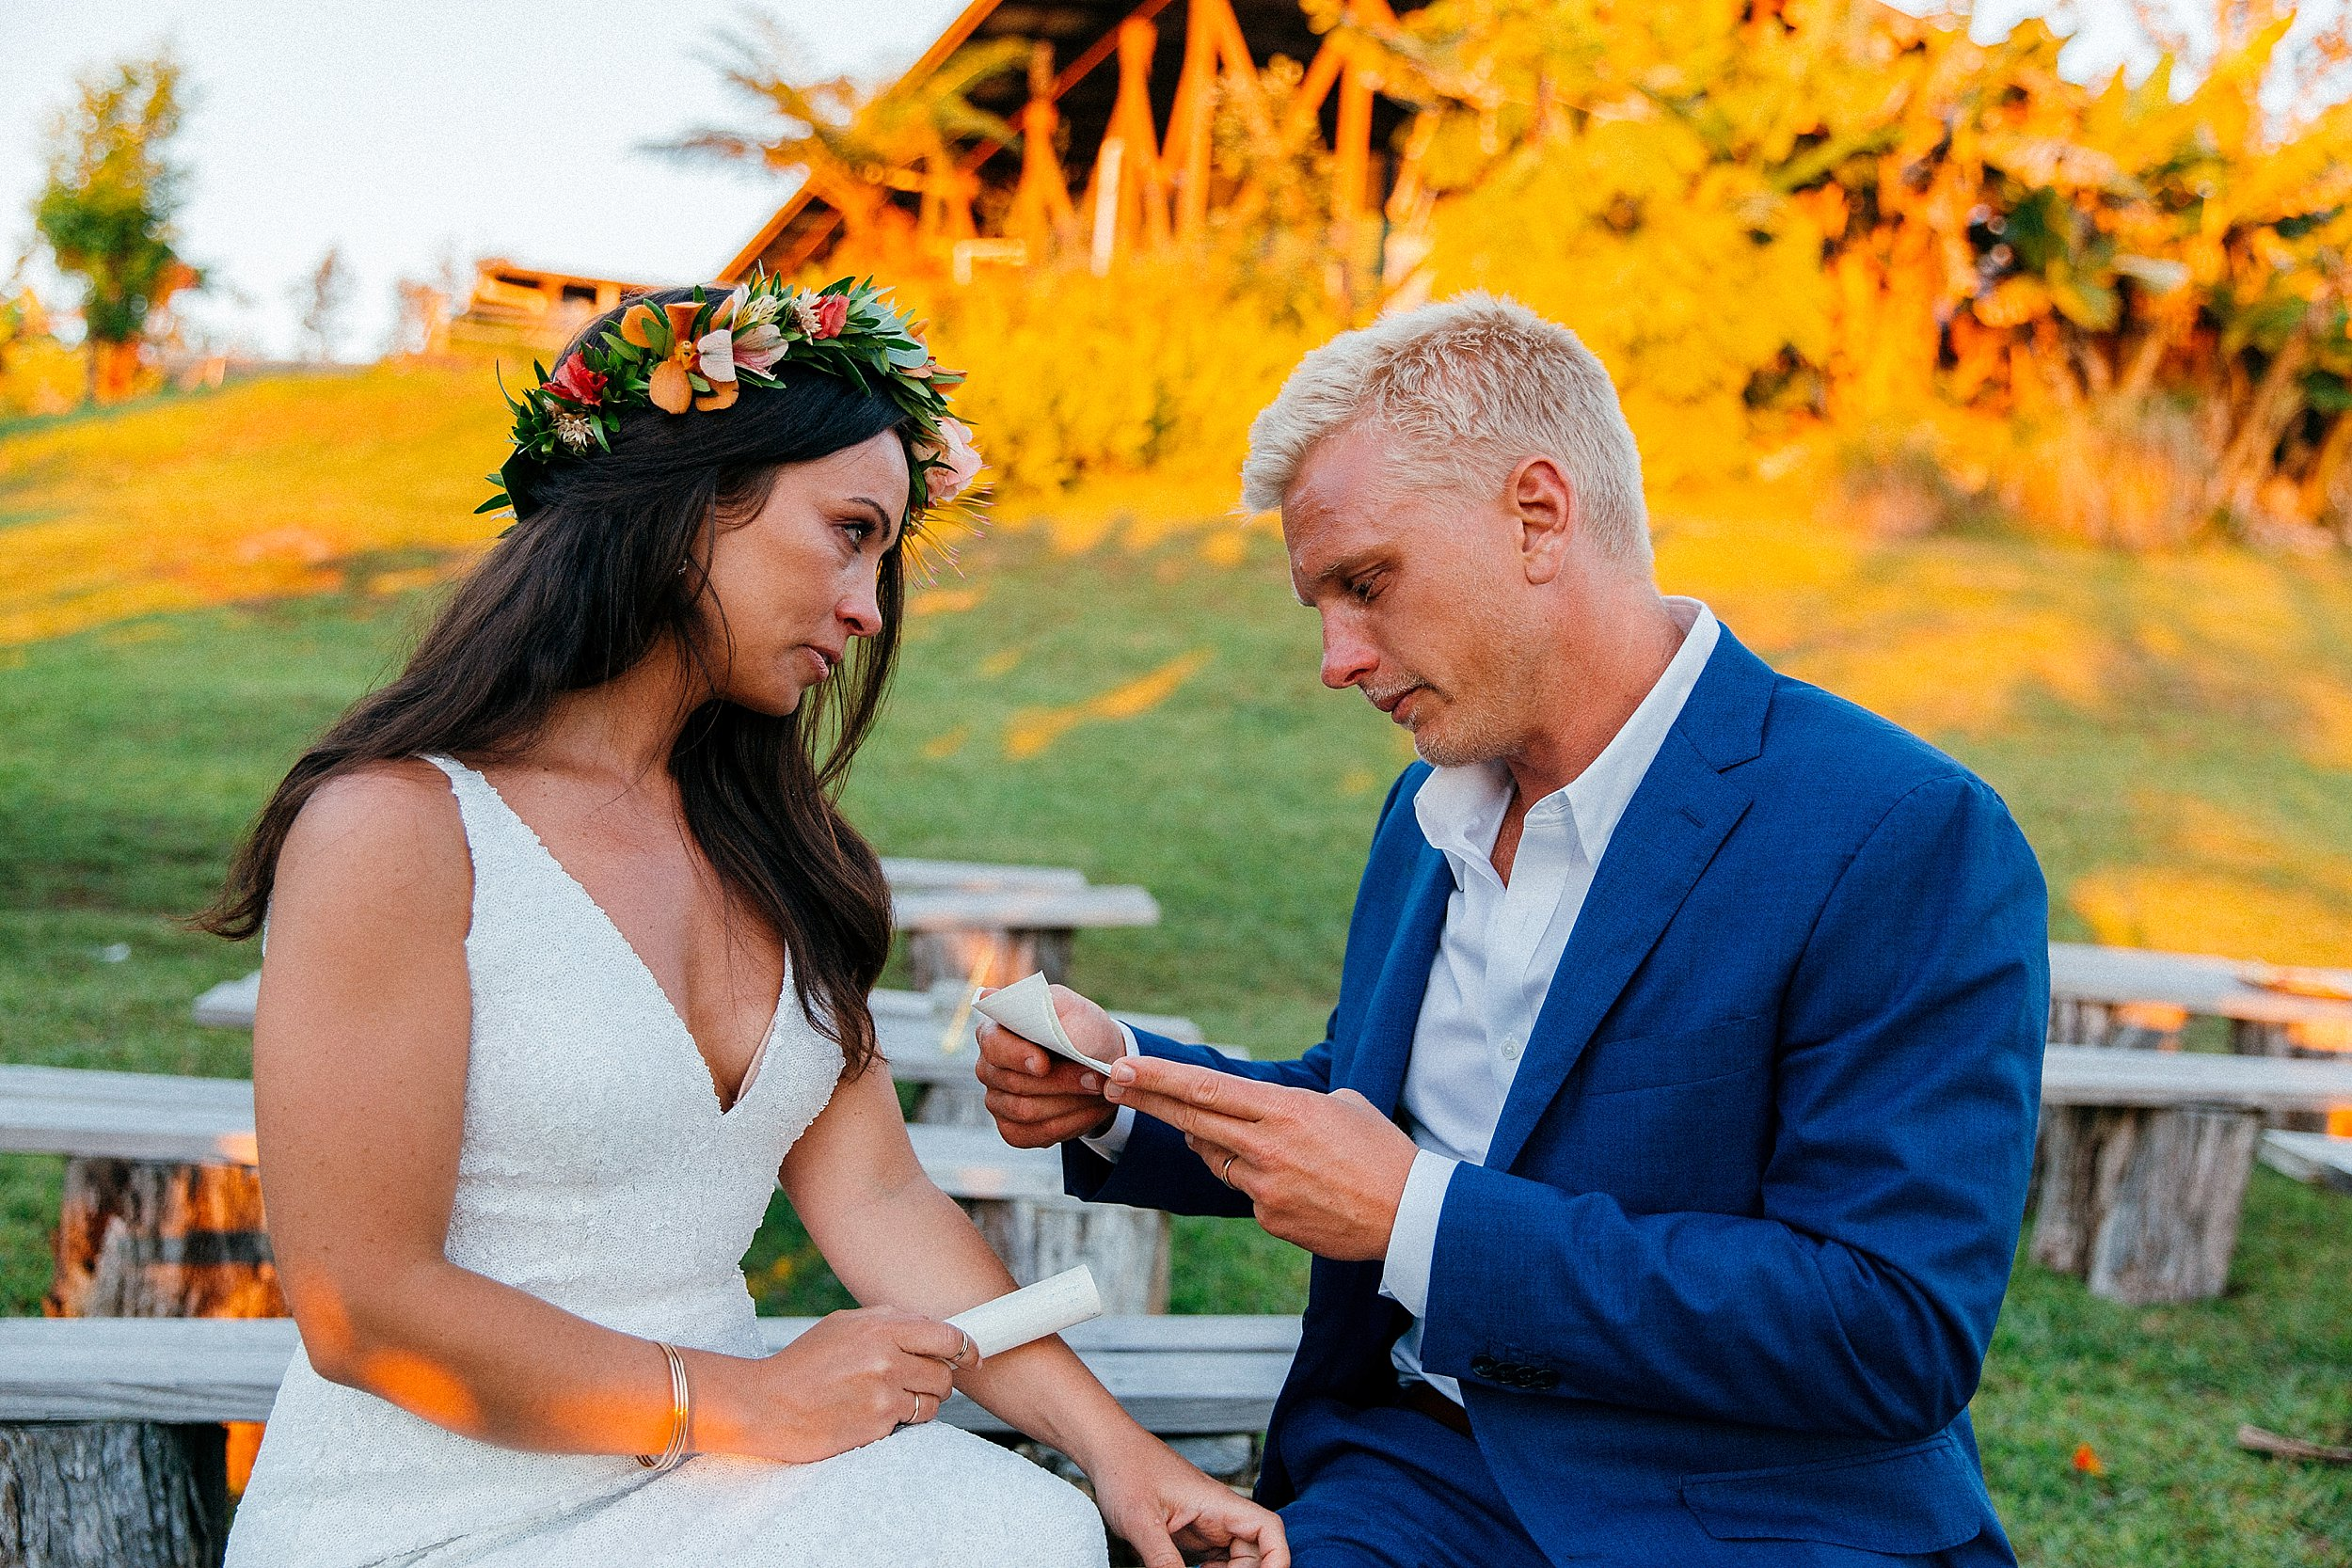 Emily & Jay exchange vows after their wedding day at Sunshower Coffee Farms in Kona, Hawaii.